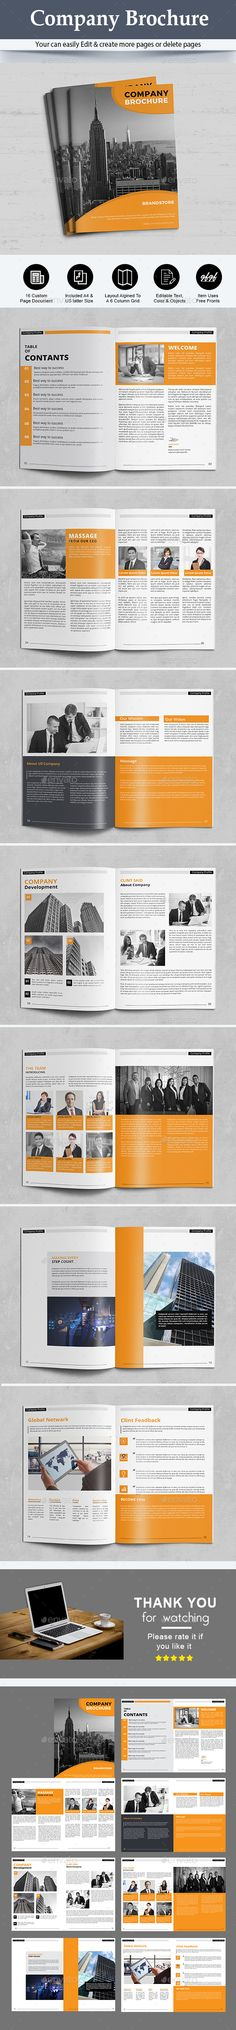 The Company Brochure - Corporate Brochures